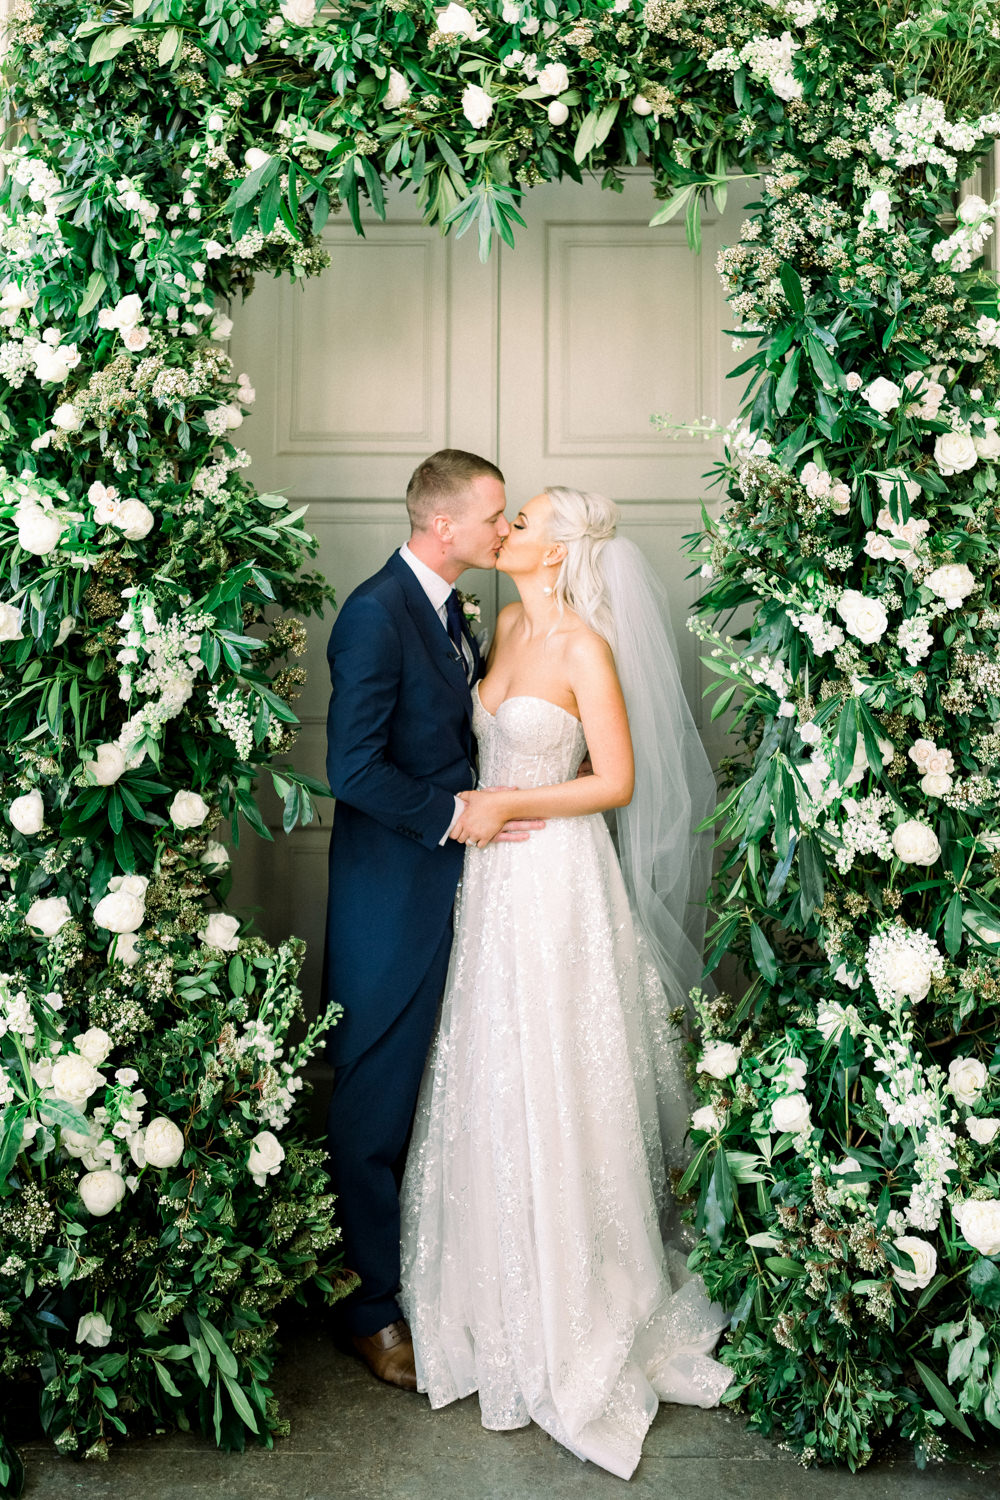 Bride Bridal Berta Princess Sparkly Dress Gown Veil Navy Tailcoat Groom Sweetheart Floral Arch Aynhoe Park Wedding Sanshine Photography